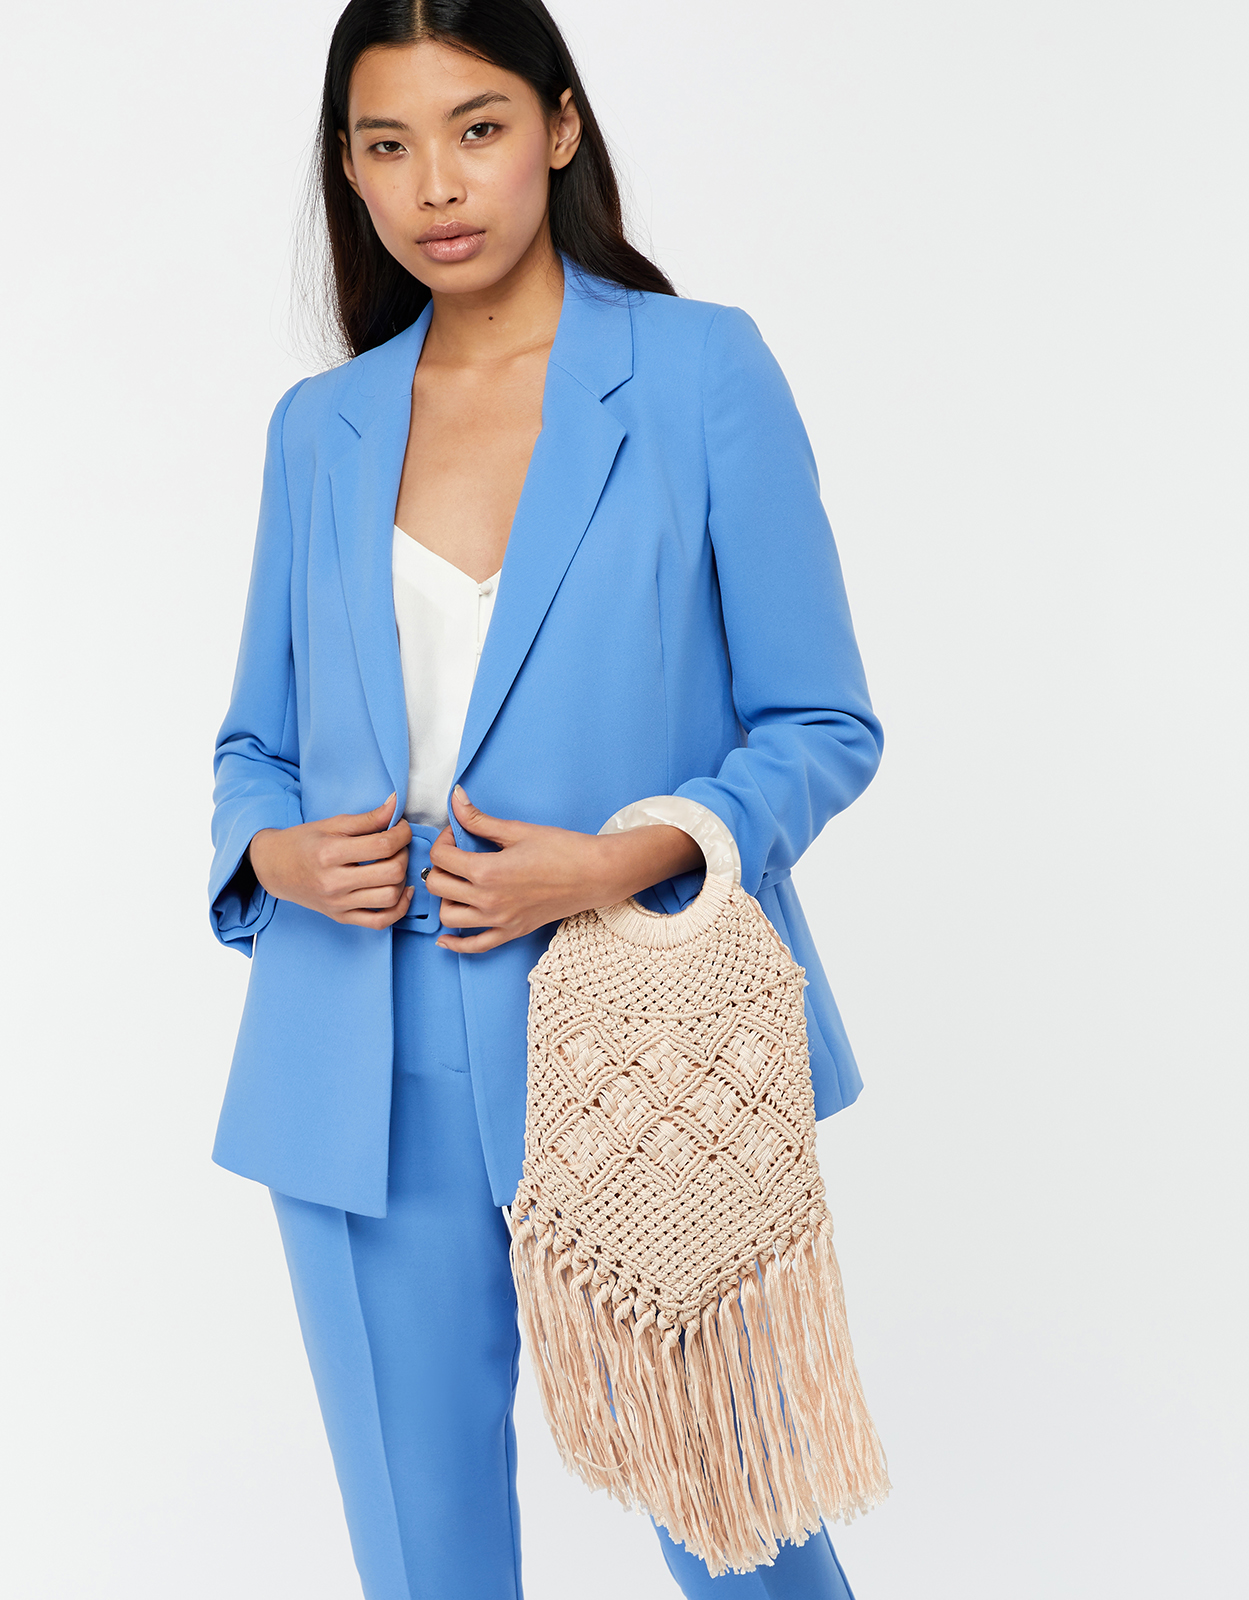 Monsoon Marisol Macramé Tassel Occasion Bag